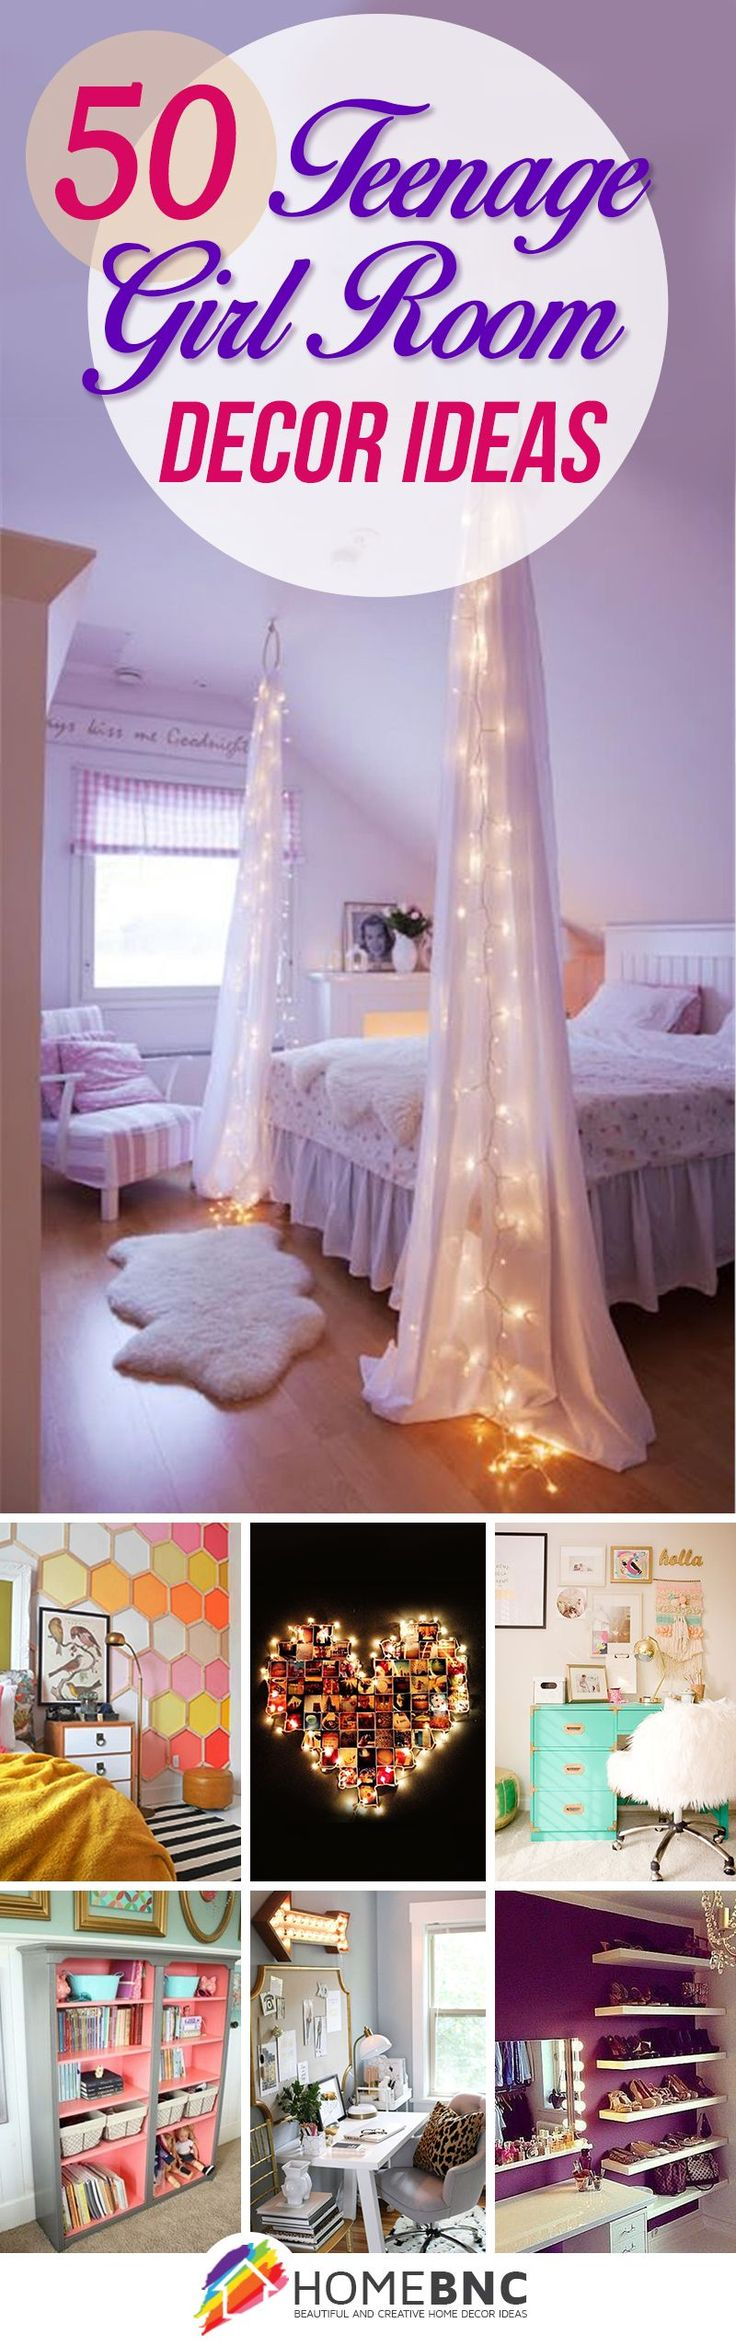 Kids Bedroom Design For Girls best 25+ girl rooms ideas on pinterest | girl room, girl bedroom